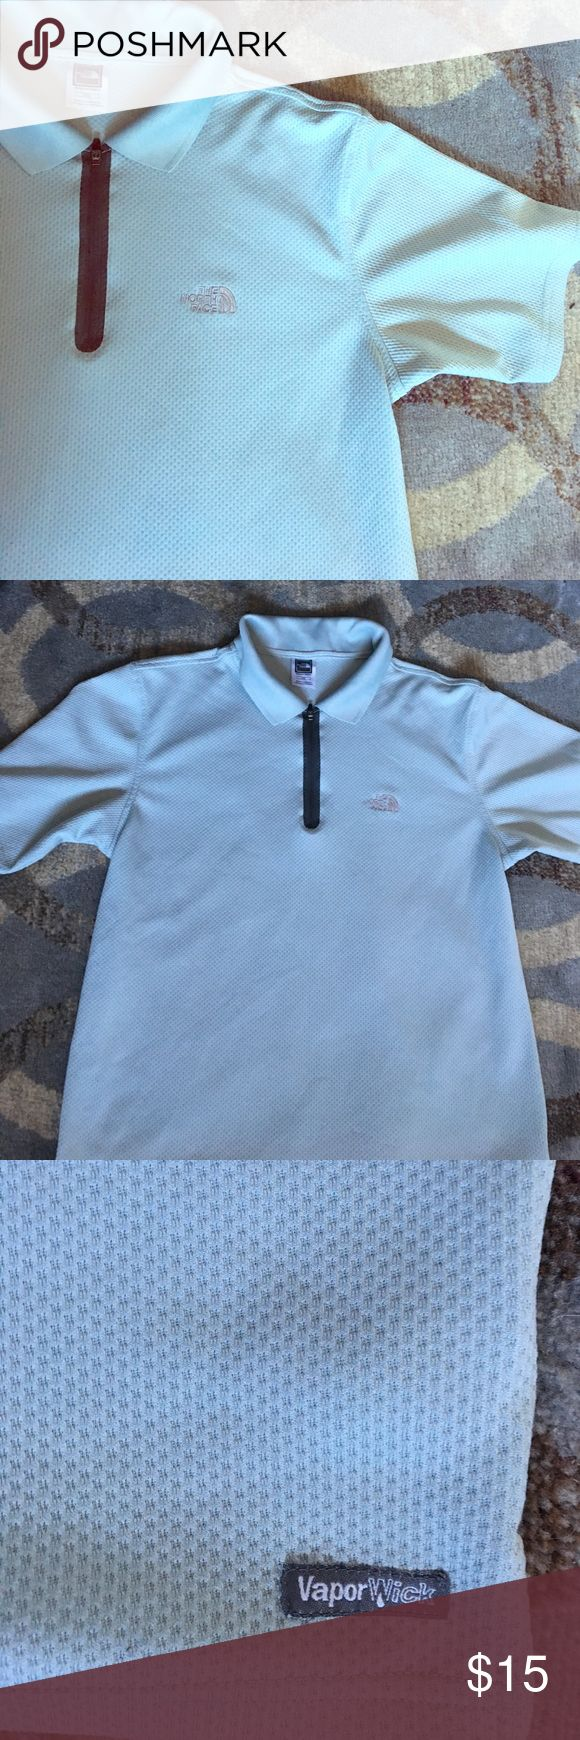 The North Face polo collared shirt Gently used. No flaws The North Face Shirts Polos